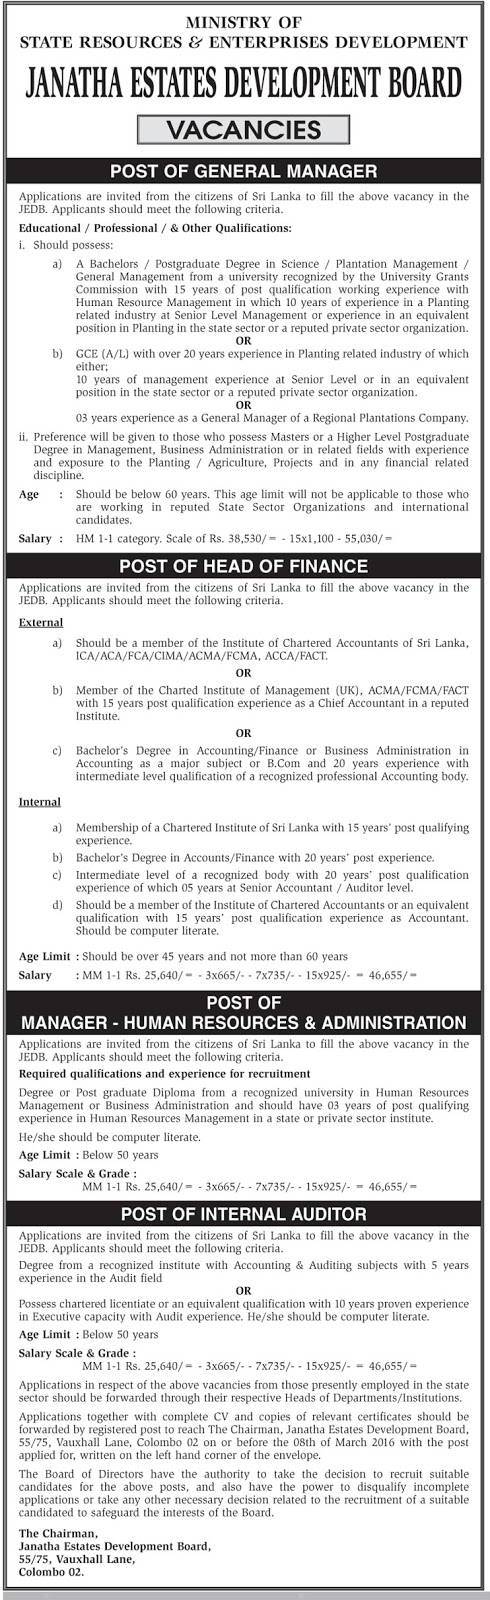 Vacancies – General Manager – Head of Finance – Manager (Human Resources & Administration) – Internal Auditor – Janatha Estates Development Board - Ministry of State Resources & Enterprises Development